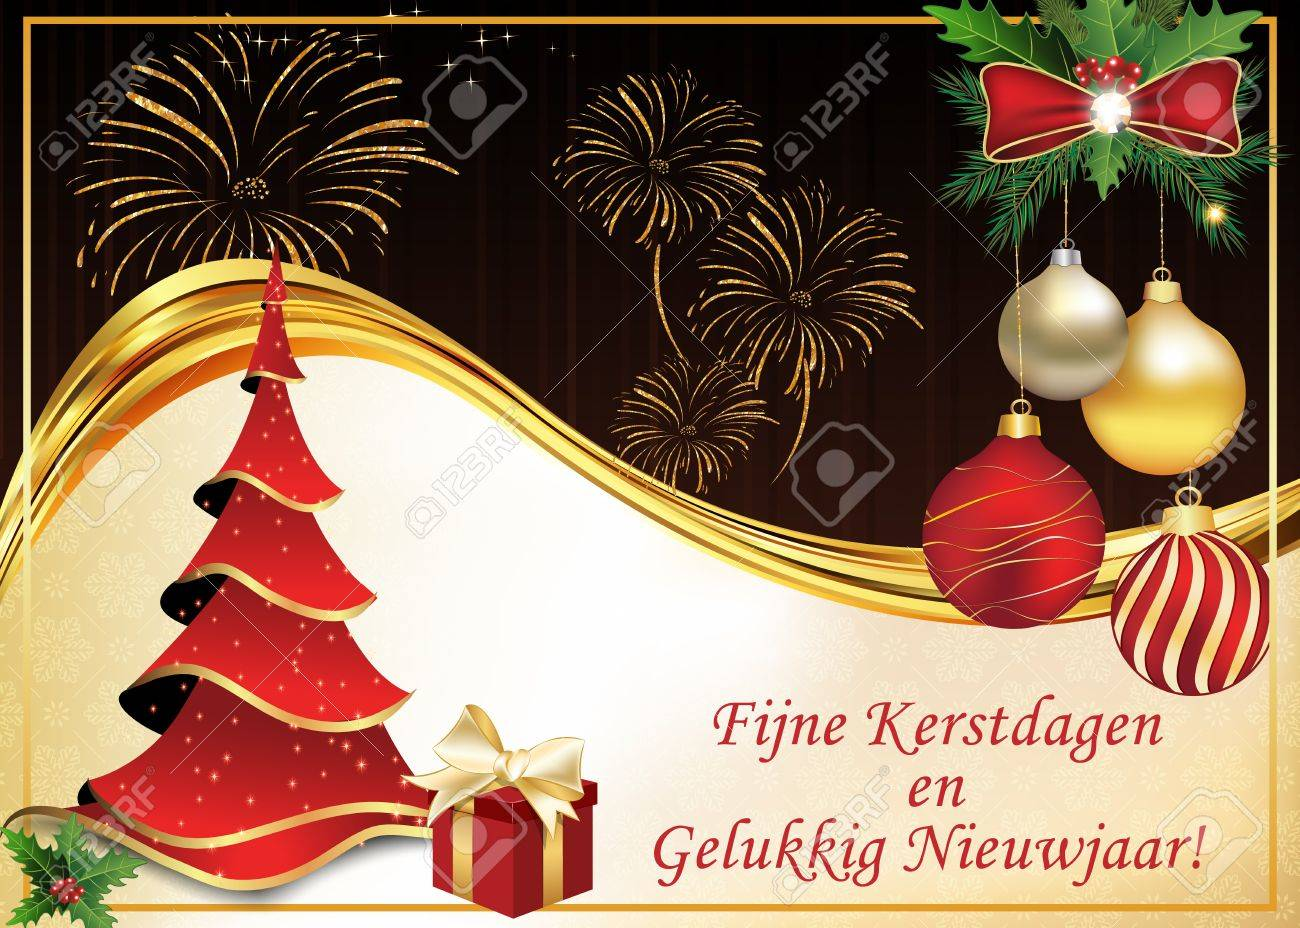 dutch greeting card merry christmas and happy new year text translation print colors